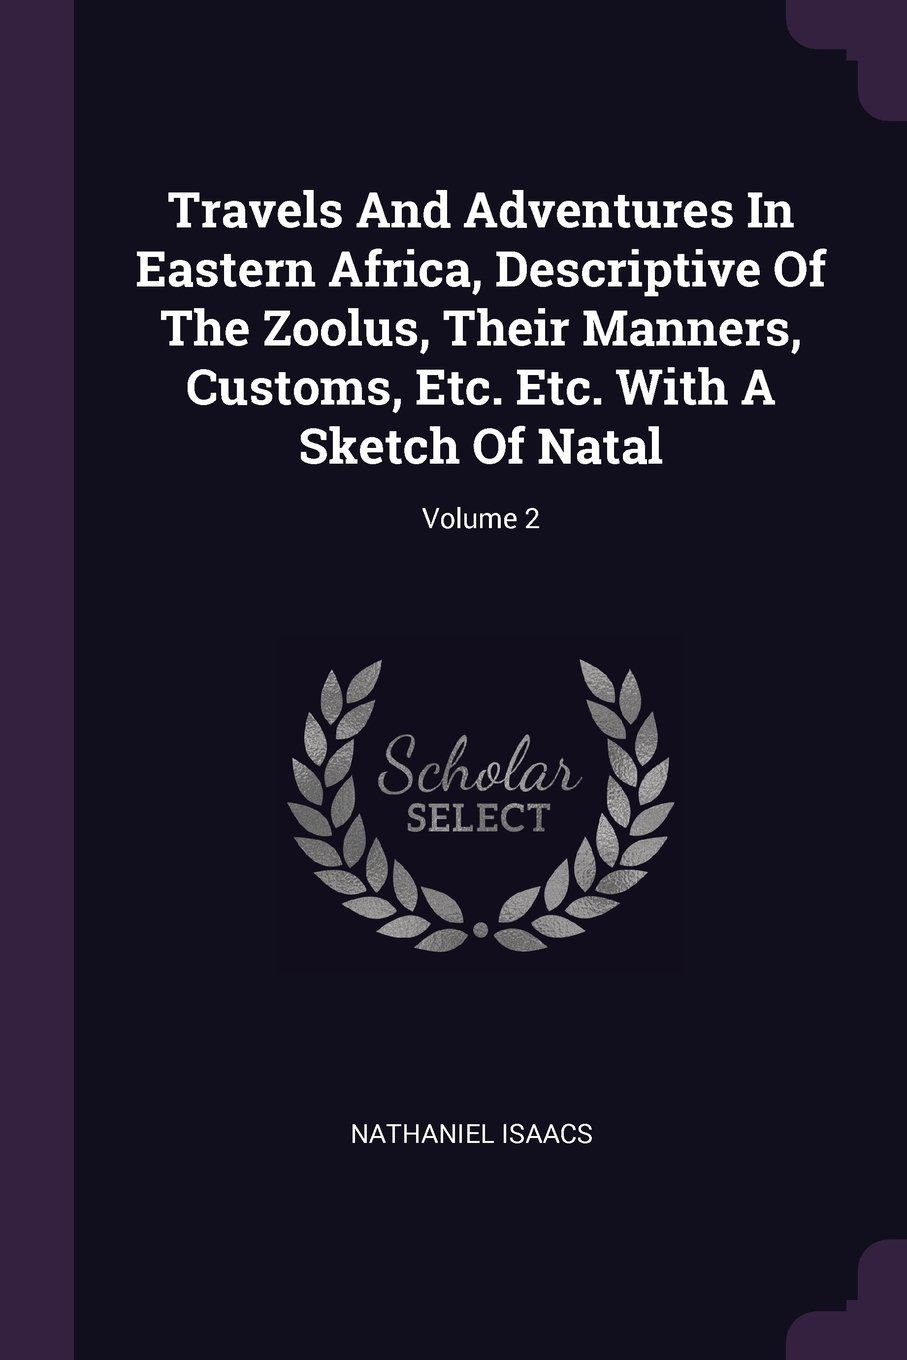 Read Online Travels And Adventures In Eastern Africa, Descriptive Of The Zoolus, Their Manners, Customs, Etc. Etc. With A Sketch Of Natal; Volume 2 ebook